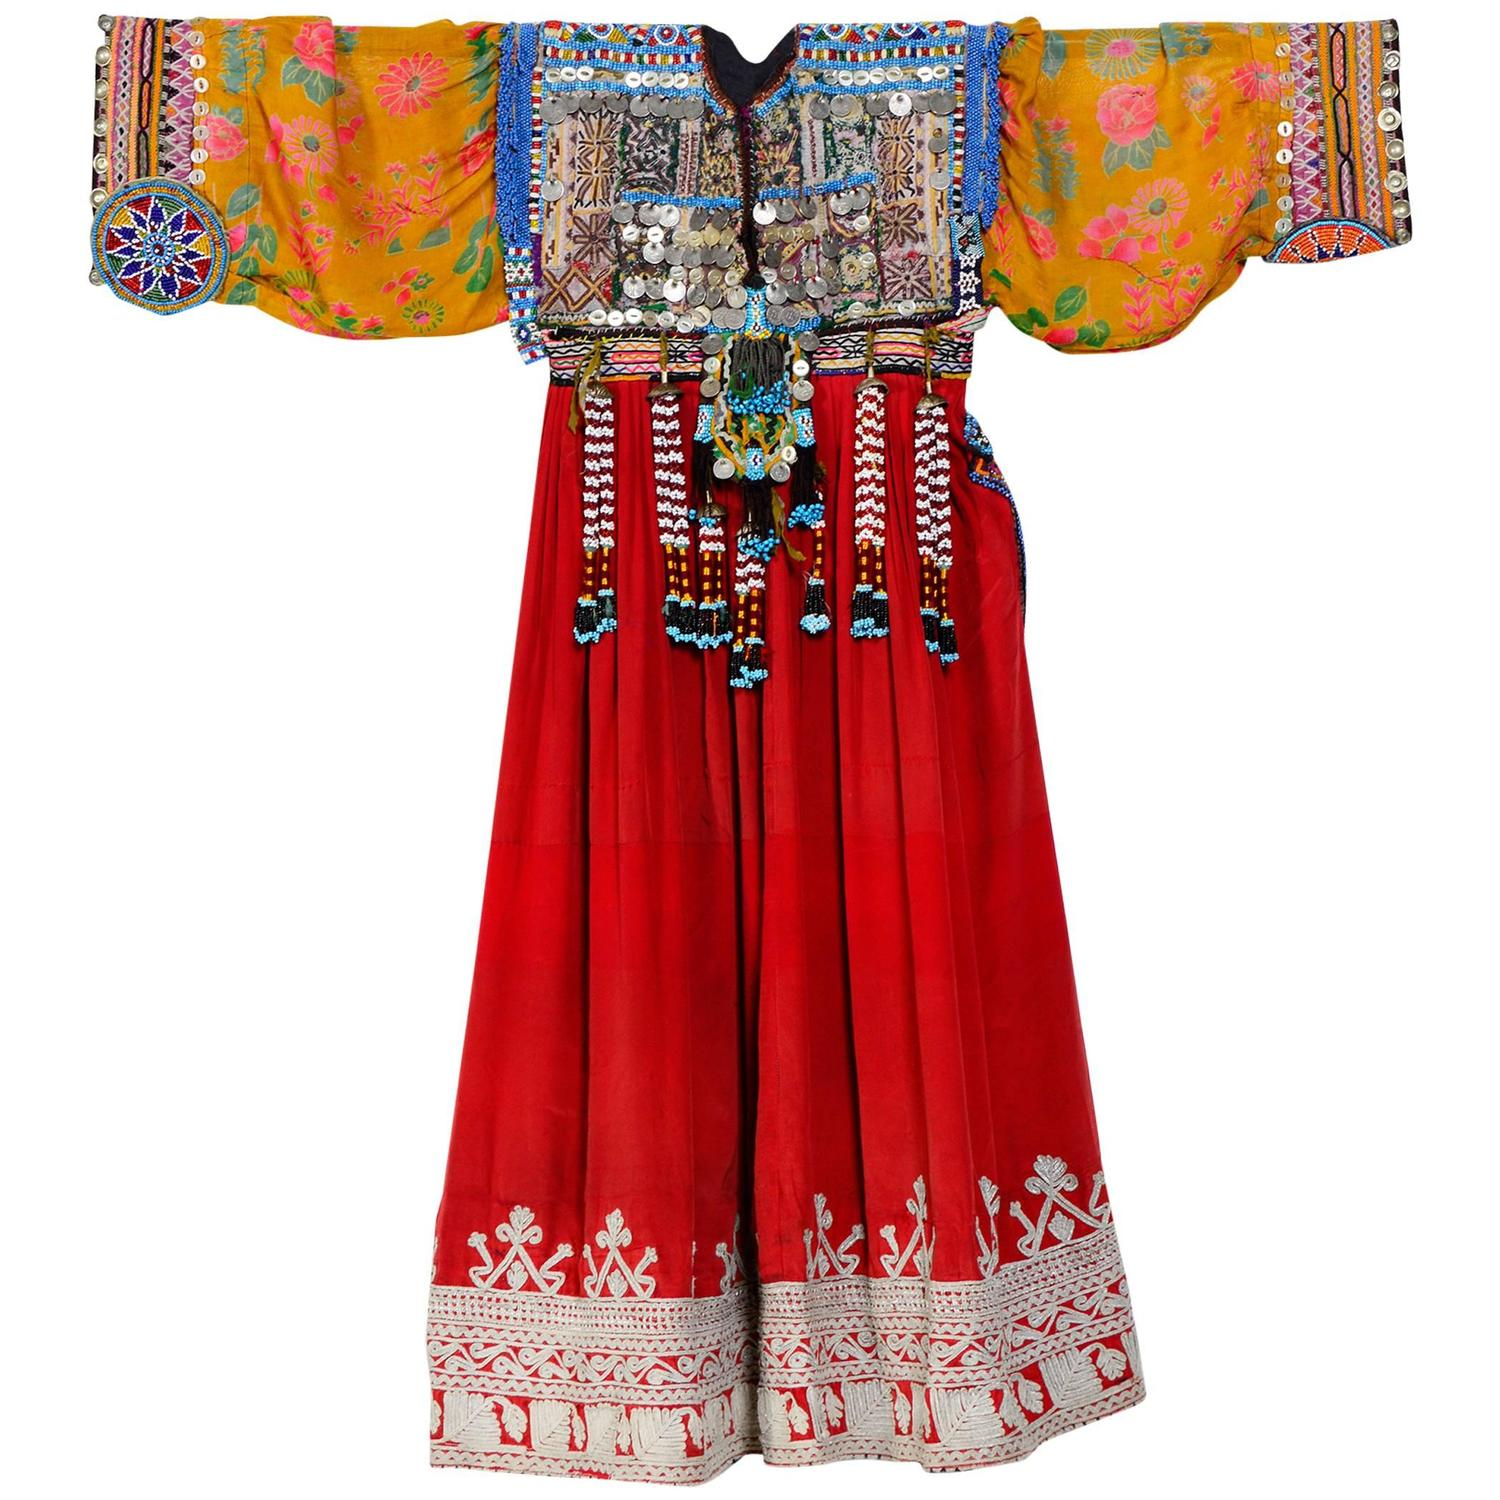 Vintage Afghan Kuchi Nomade Dress At 1stdibs